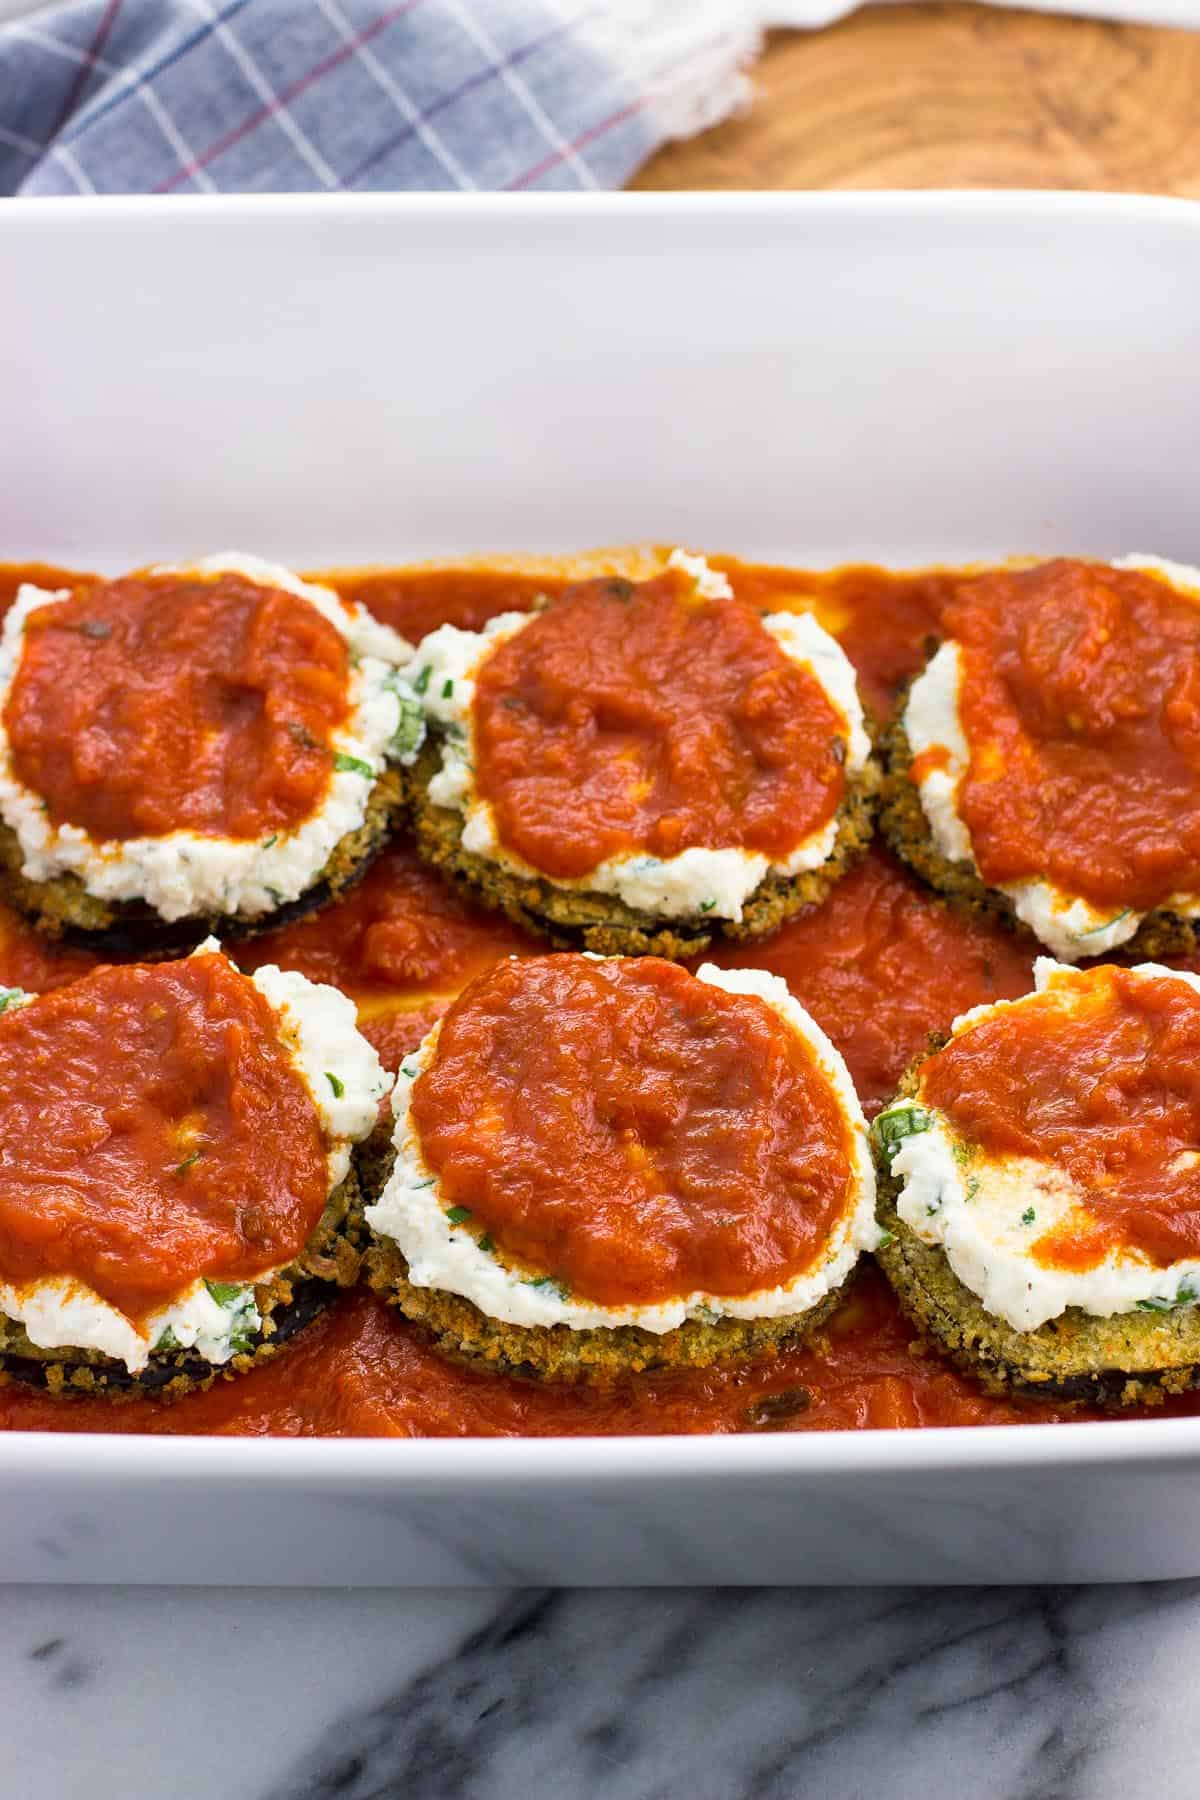 Sauce spread on top of the ricotta on the eggplant rounds.